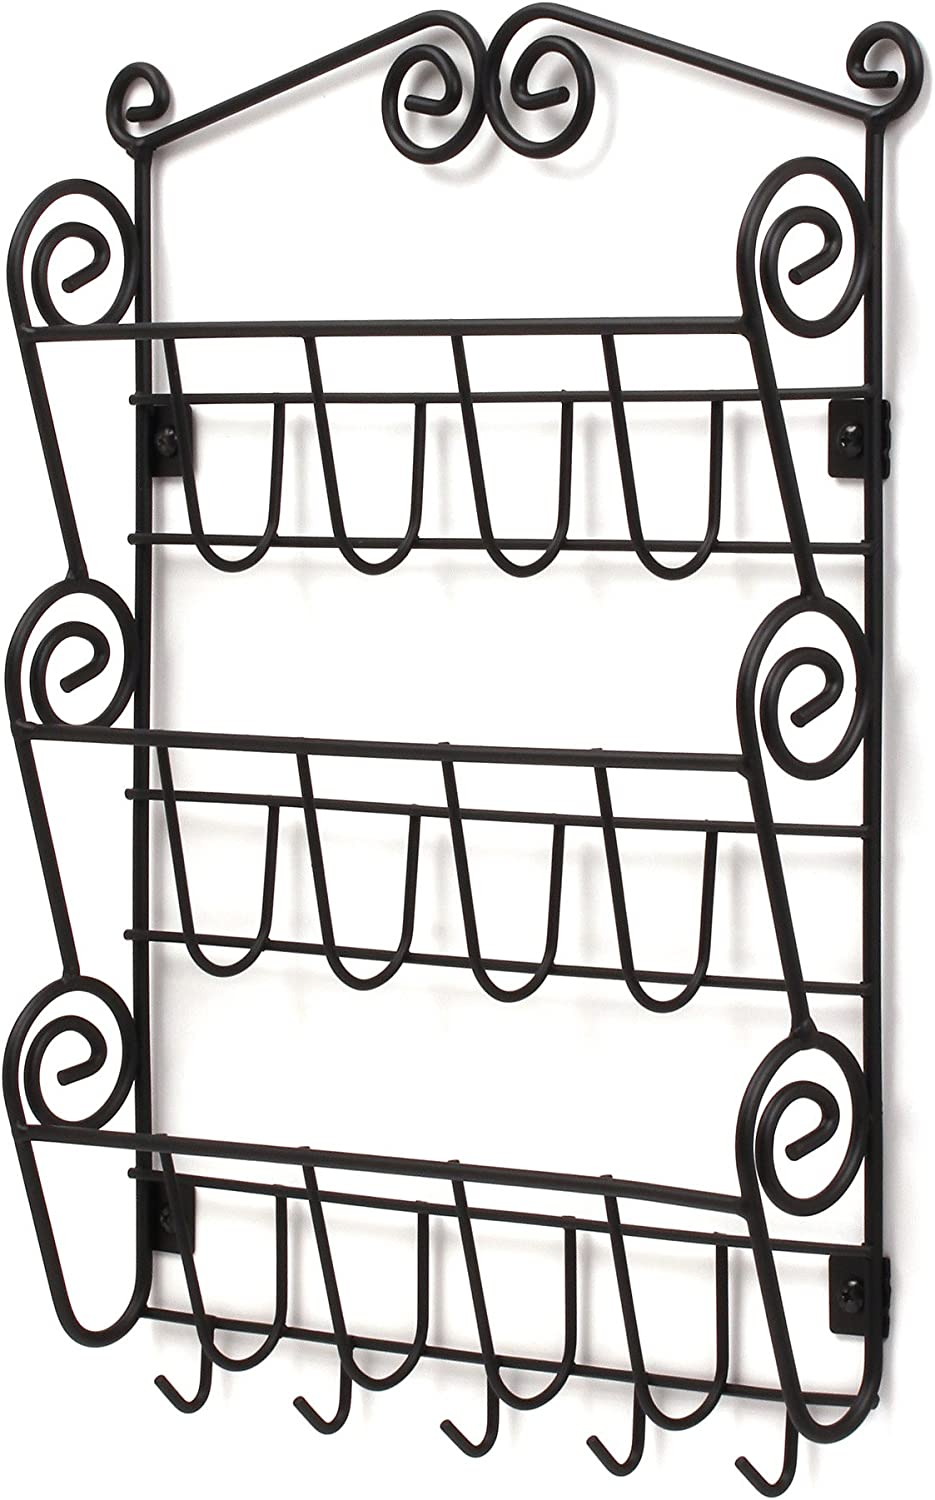 Spectrum Diversified Scroll 3-Tier Mail Key Hooks Mount Entryway Mail & Keys, Wall Letter Holder for Home & Office Organization, Black